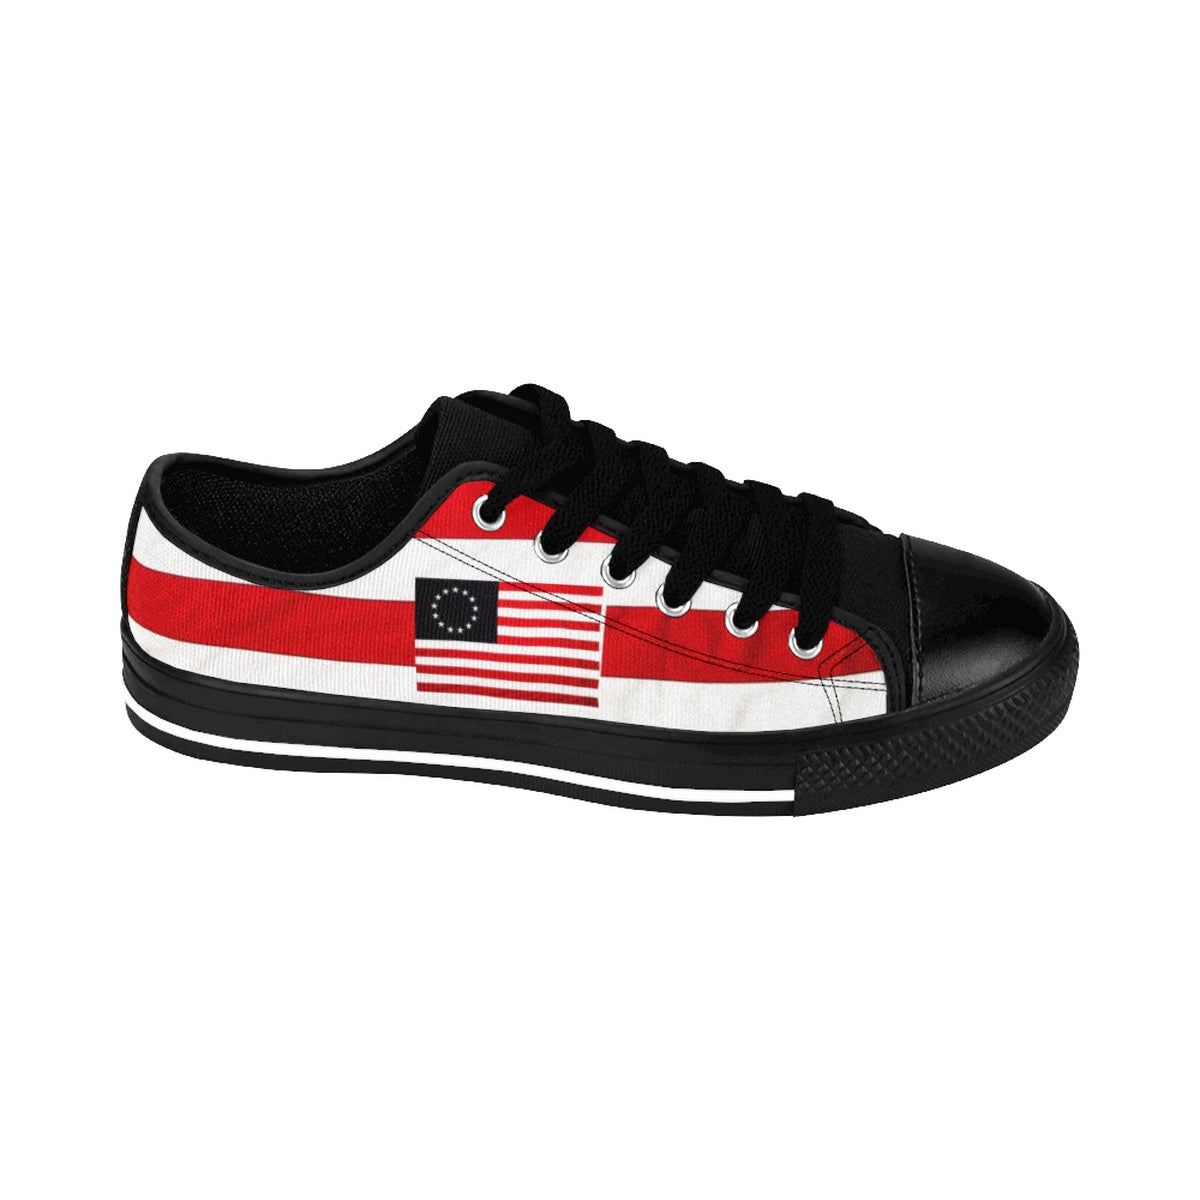 Men's Betsy Ross Flag Low Top Sneakers (See foot chart before ordering)